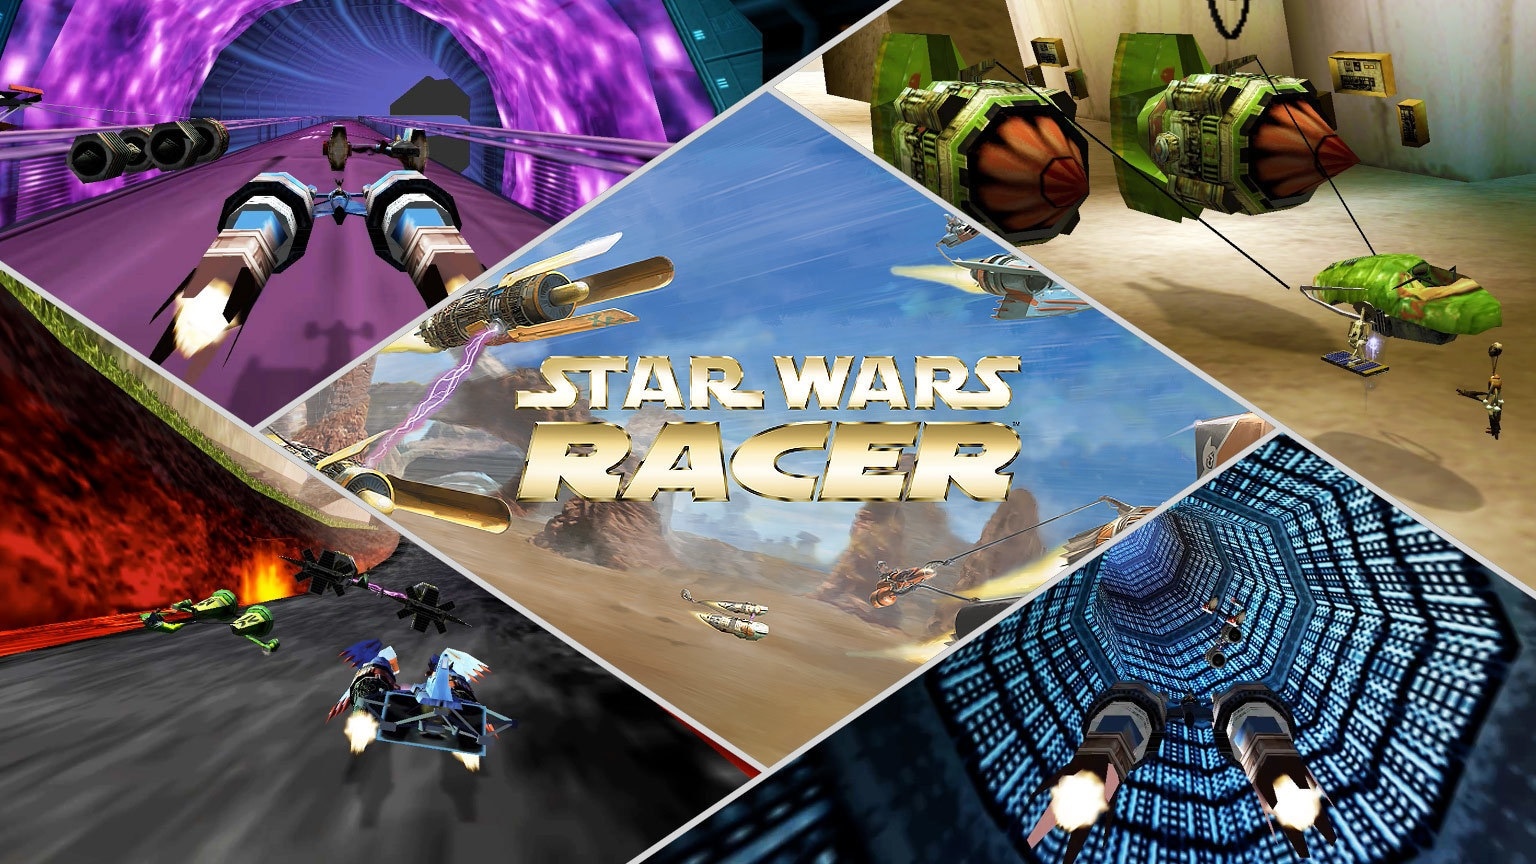 Over 20 Years After Its Debut, the Force – and Fandom – is Still Strong with Star Wars Episode I: Racer